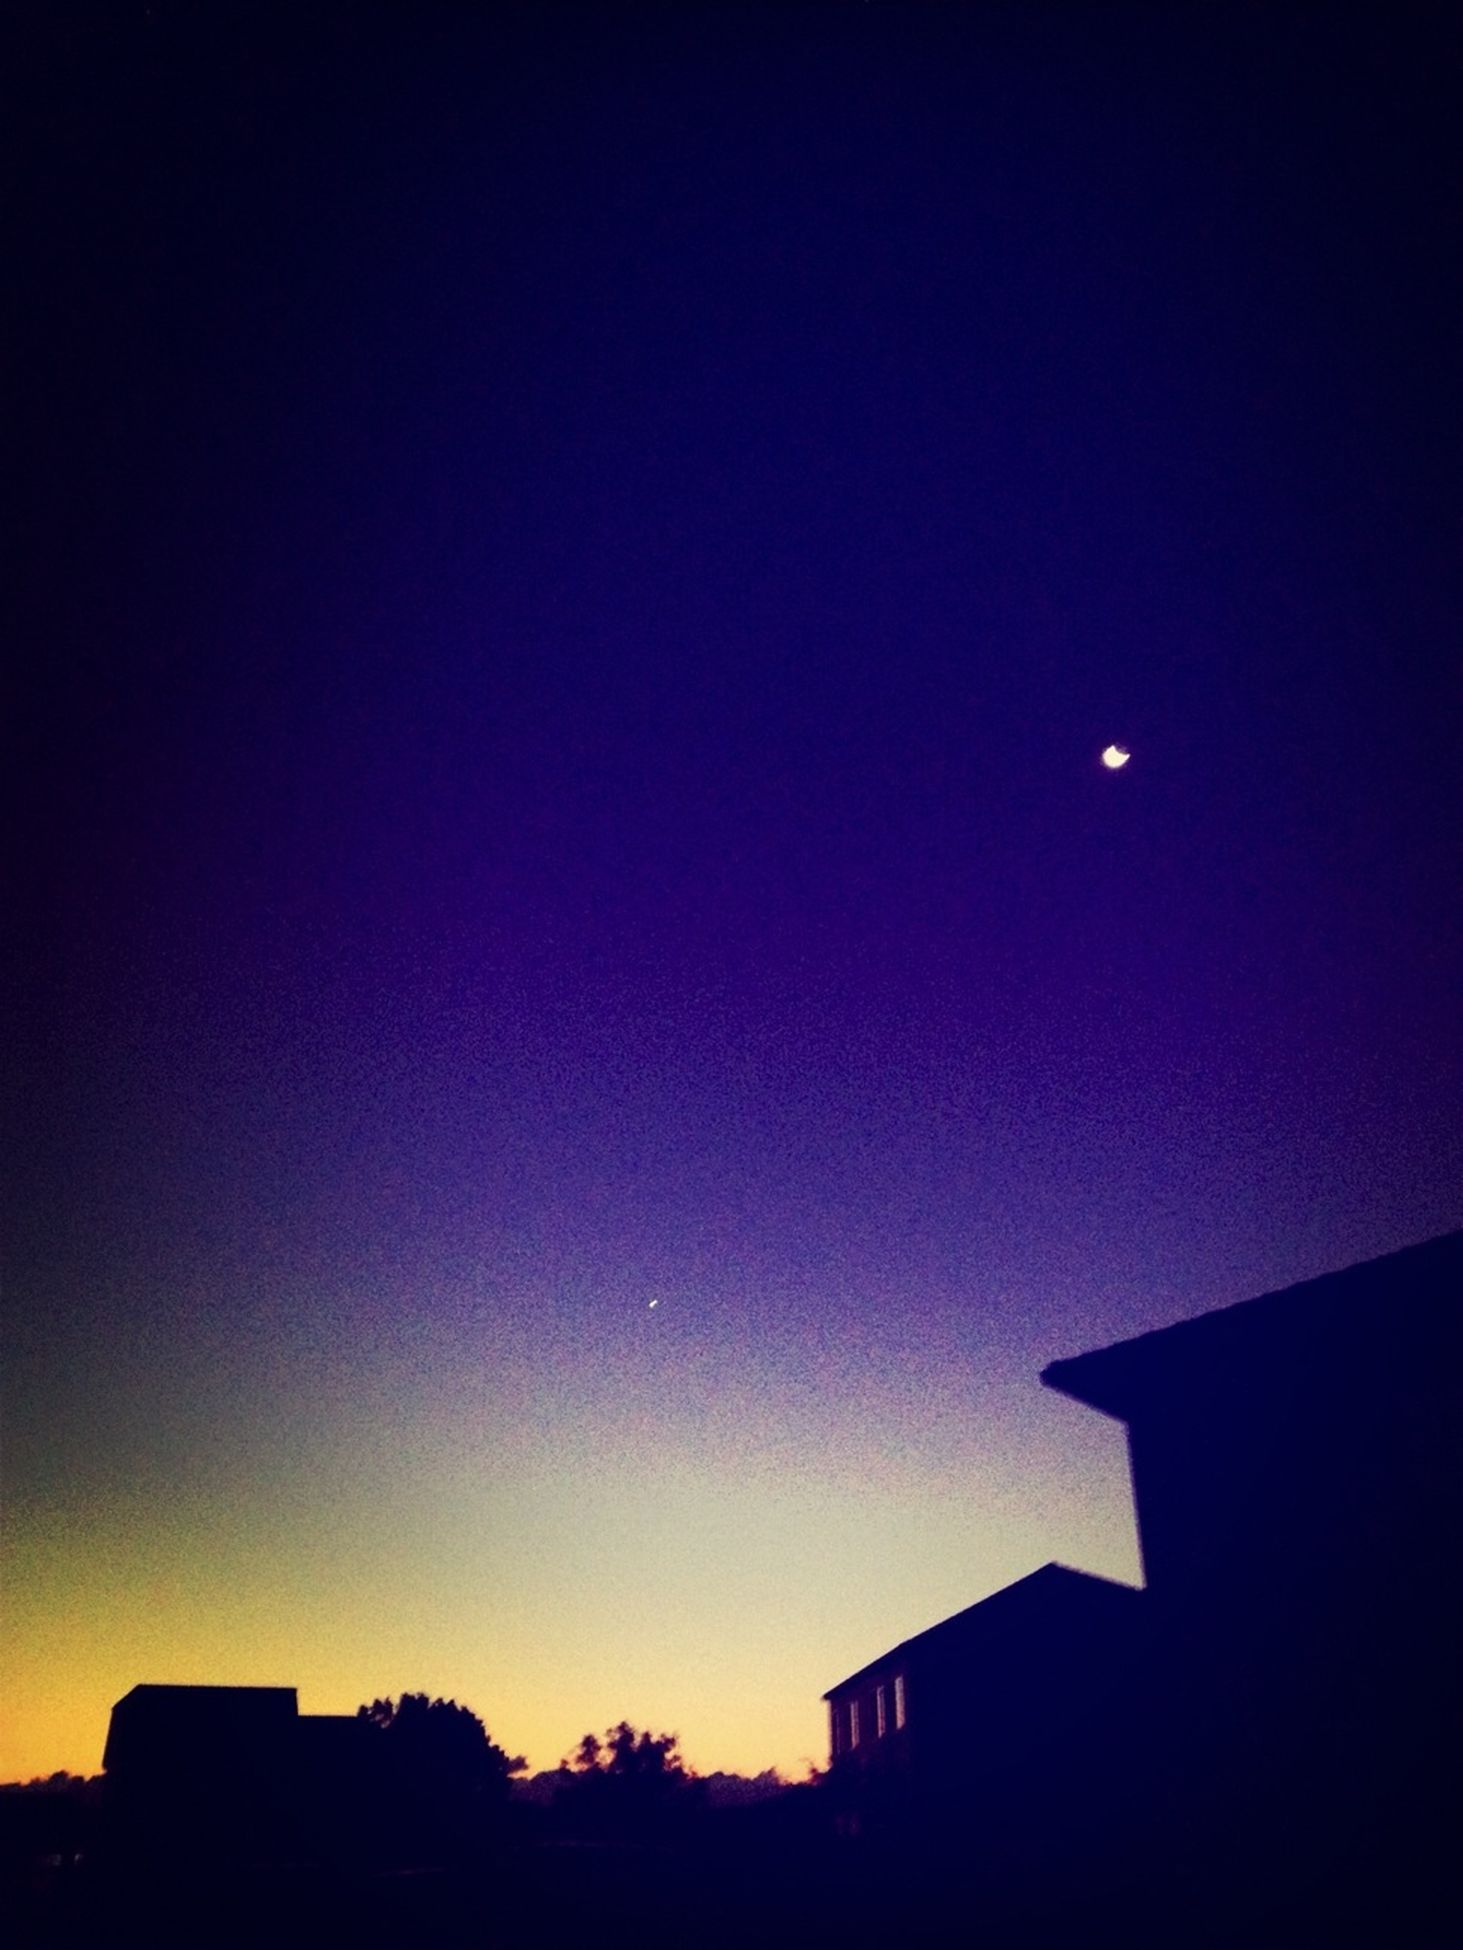 Venus and the moon in the early morning sky